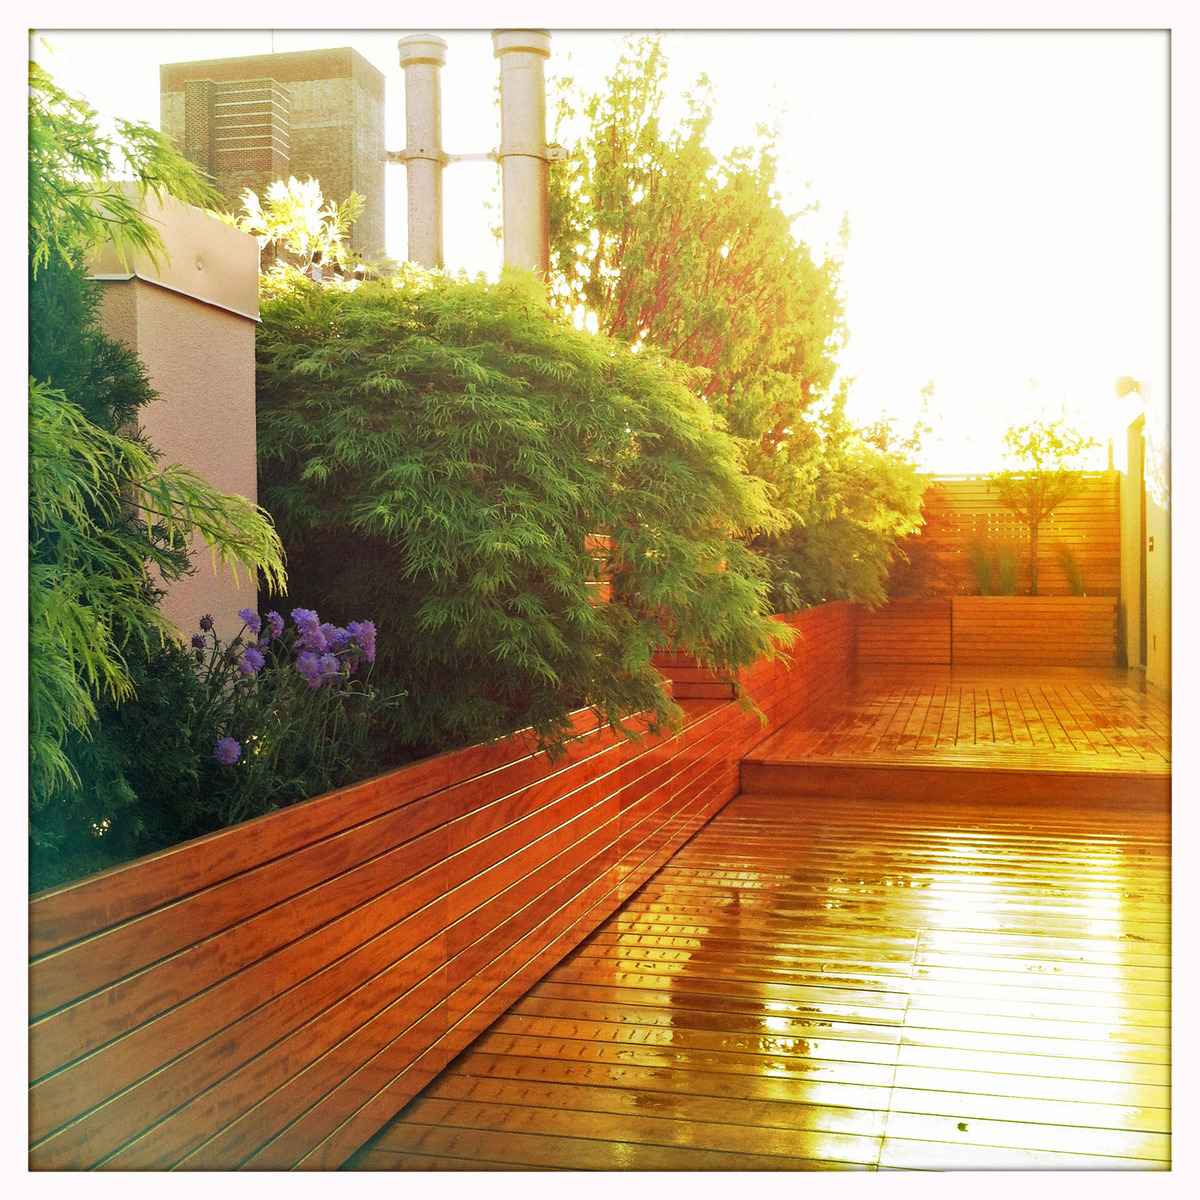 Nyc garden design rooftop zen garden for yoga studio for Wooden studios for gardens